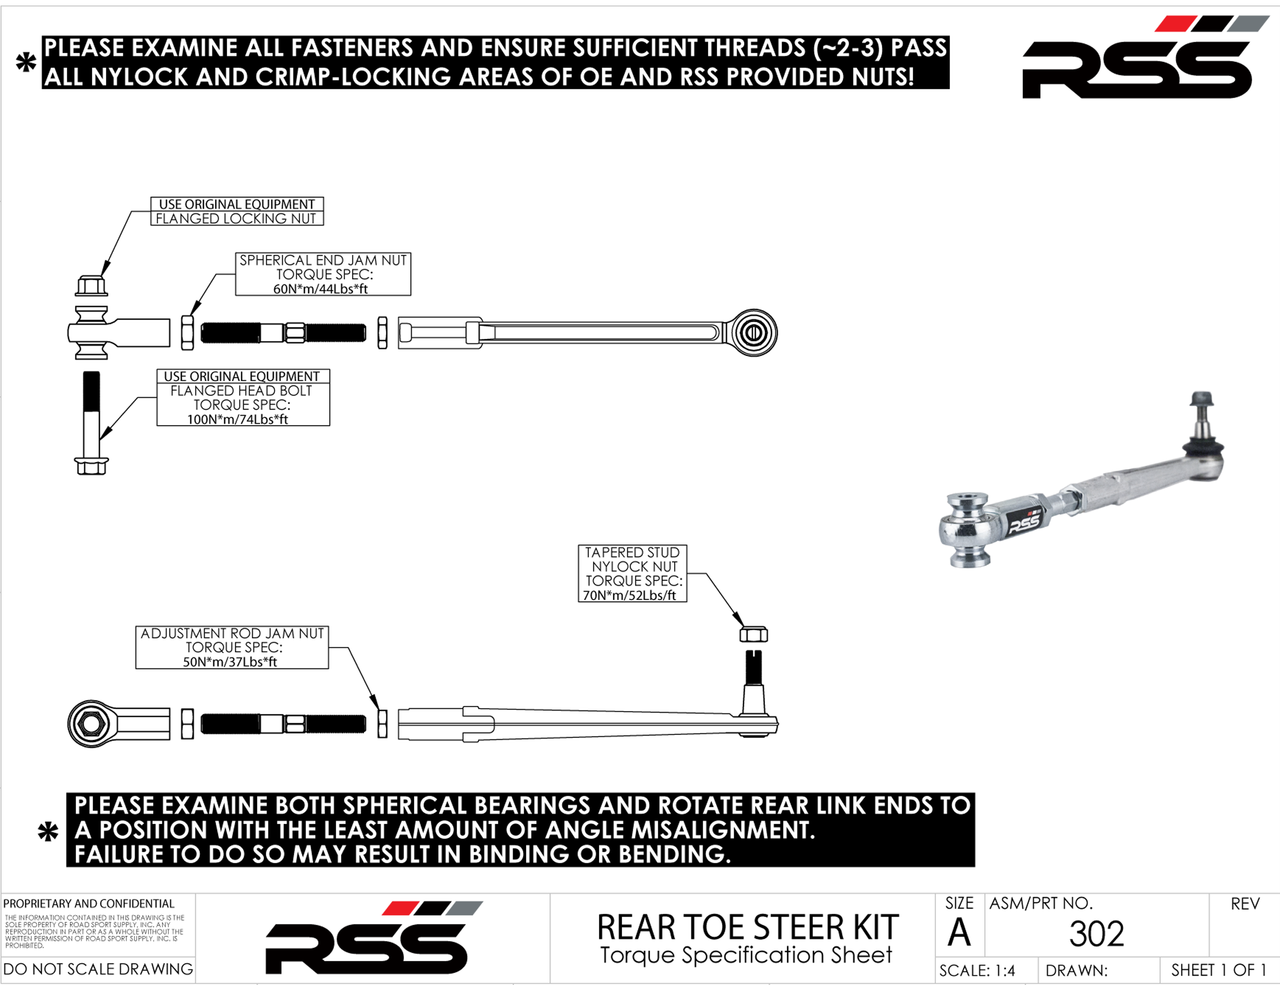 RSS 981 GT4 - TARMAC SERIES ADJUSTABLE REAR TOE STEER KIT (Set of 2) The RSS Adjustable Rear Toe Steer Kit is designed for Porsche GT4 models that have been lowered or have aggressive negative camber settings. This kit will help minimize the suspension geometry change in the REAR of the vehicle. Allows for toe adjustment at the toe steer arm giving the ability to make adjustments independent of the factory eccentric bolts which may not offer sufficient adjustment. Greatly improves handling and feedback. Eliminates rubber bushing deflection. For off road use only. AVAILABLE FOR PORSCHE® 981 GT4 Cayman Models For optional Locking Plate Kit, see our Part #333 For Front Toe/Bump Steer Kit, see our Part #370 For Optional Dust Boots, see our Part # 30178